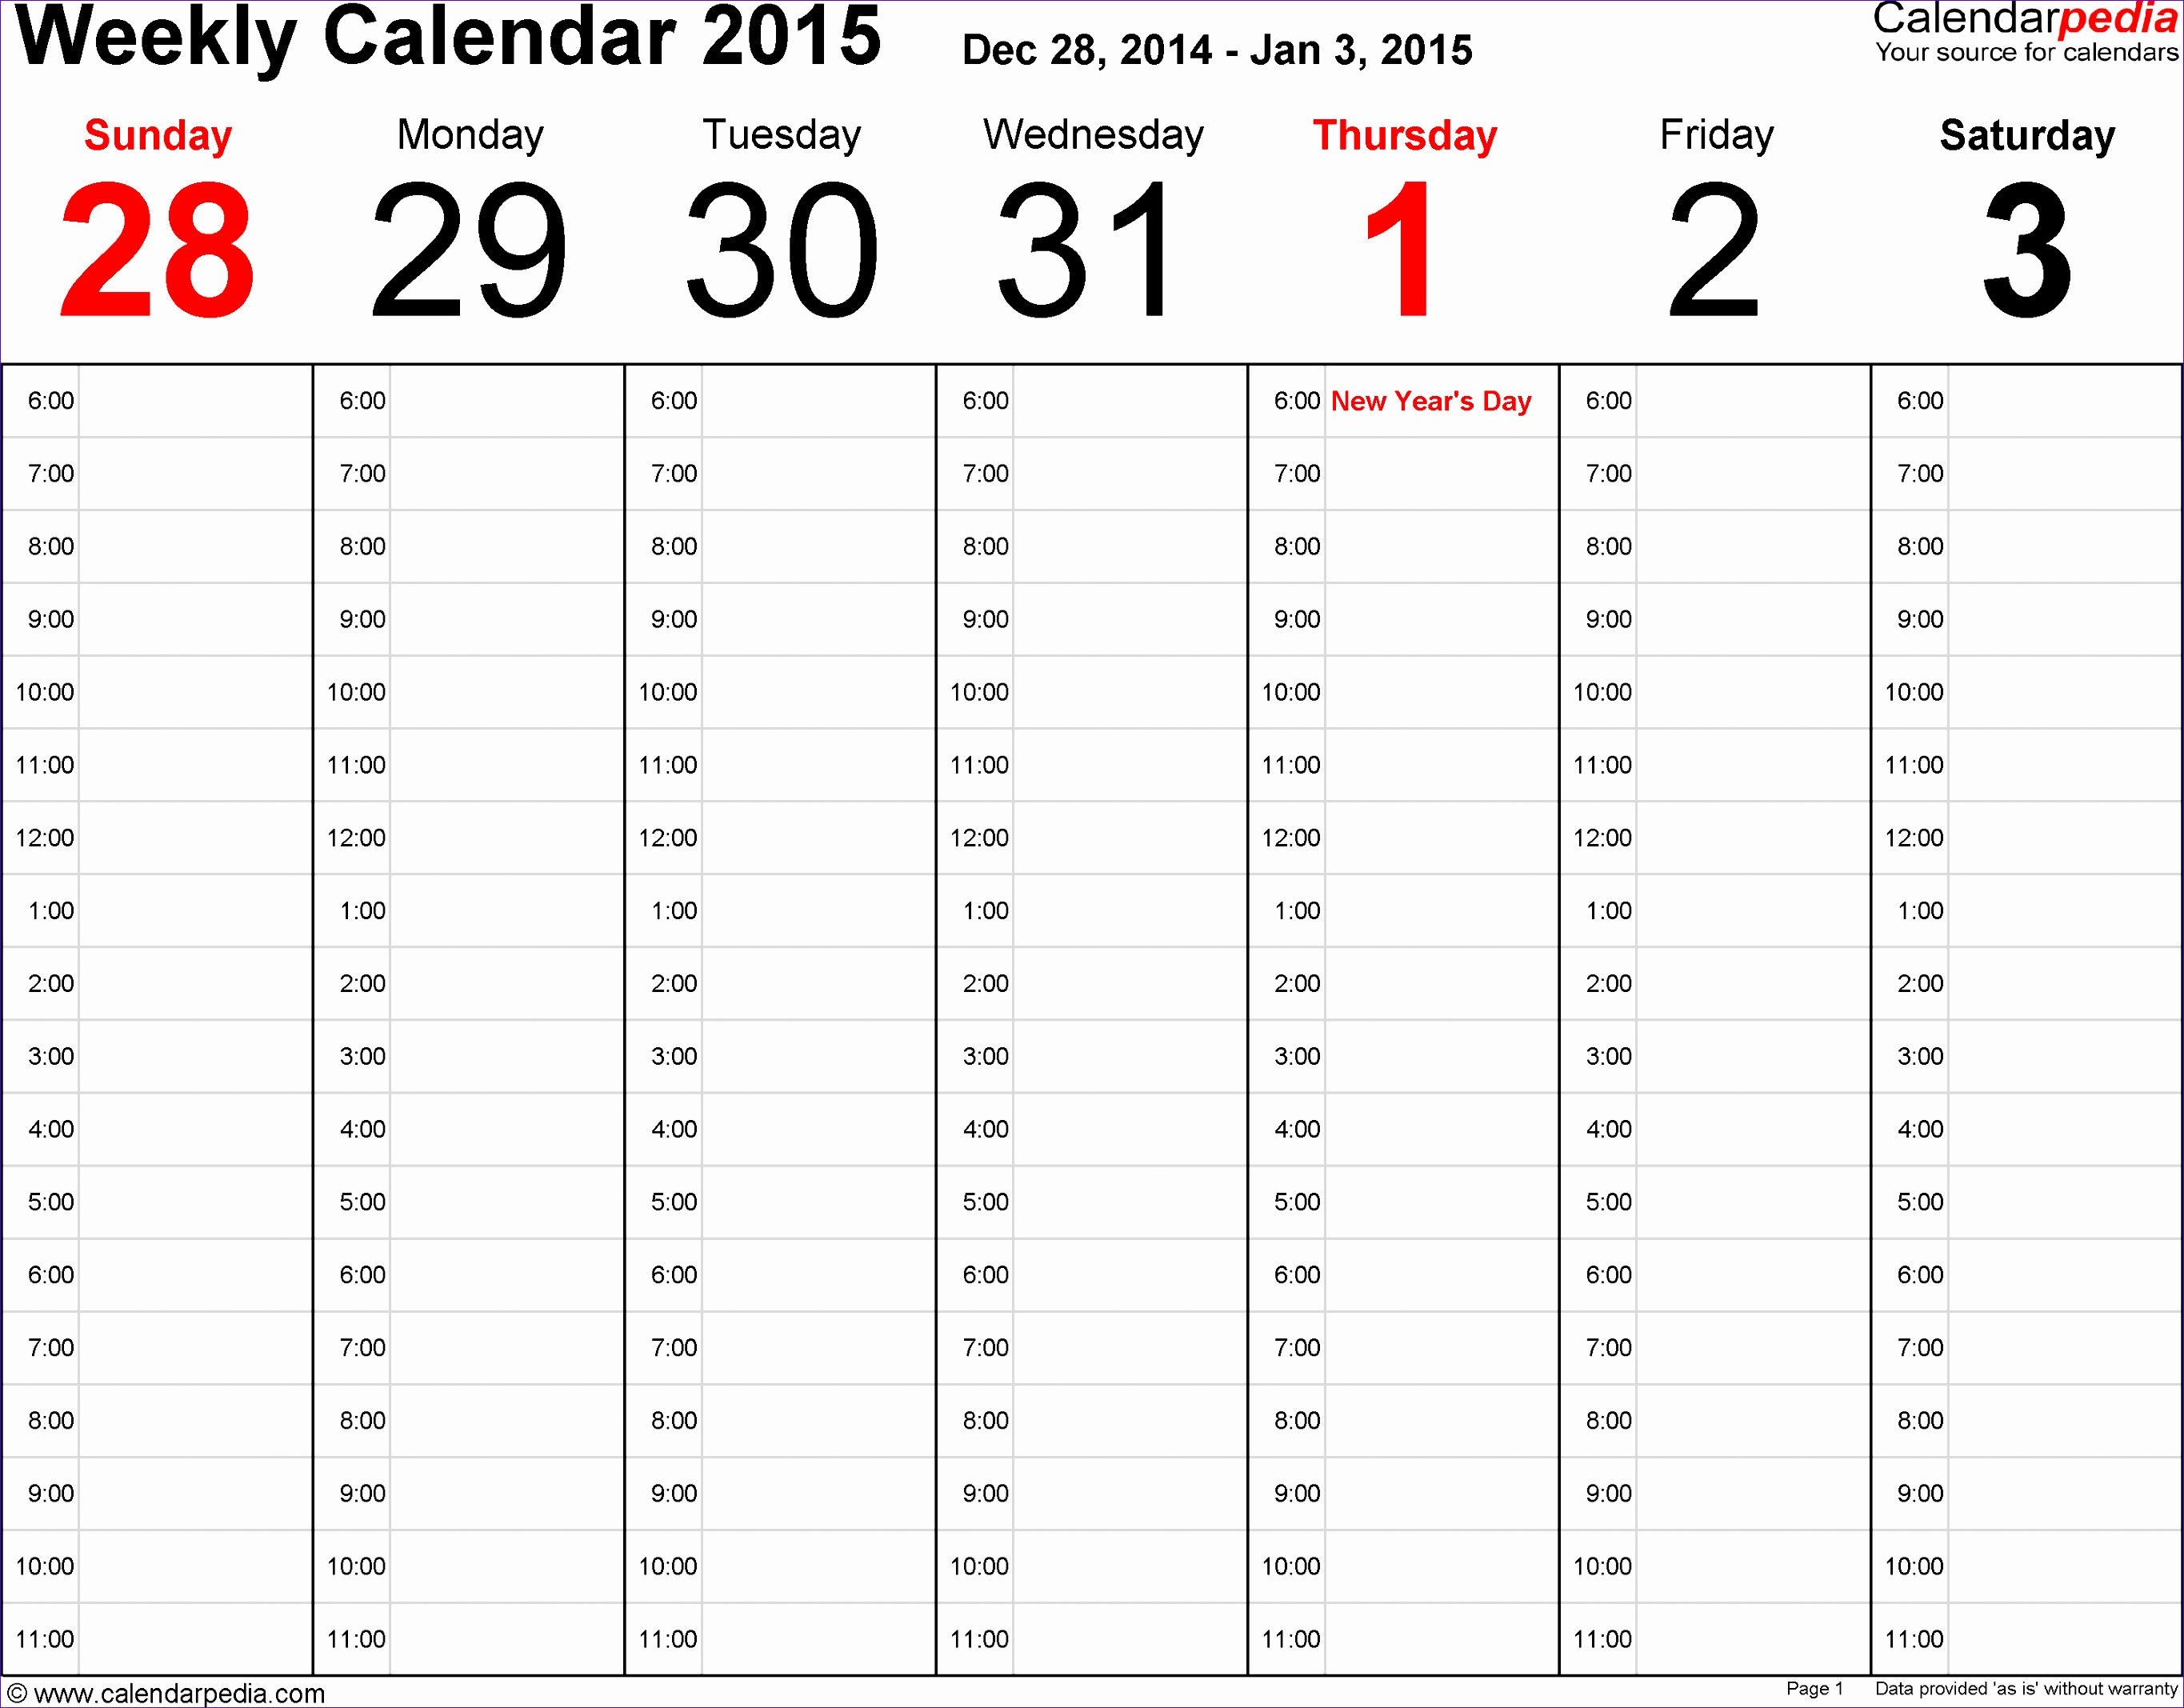 Website Project Plan Template Excel Vnuid Beautiful Weekly Calendar 2015 for Excel 12 Free Printable Templates